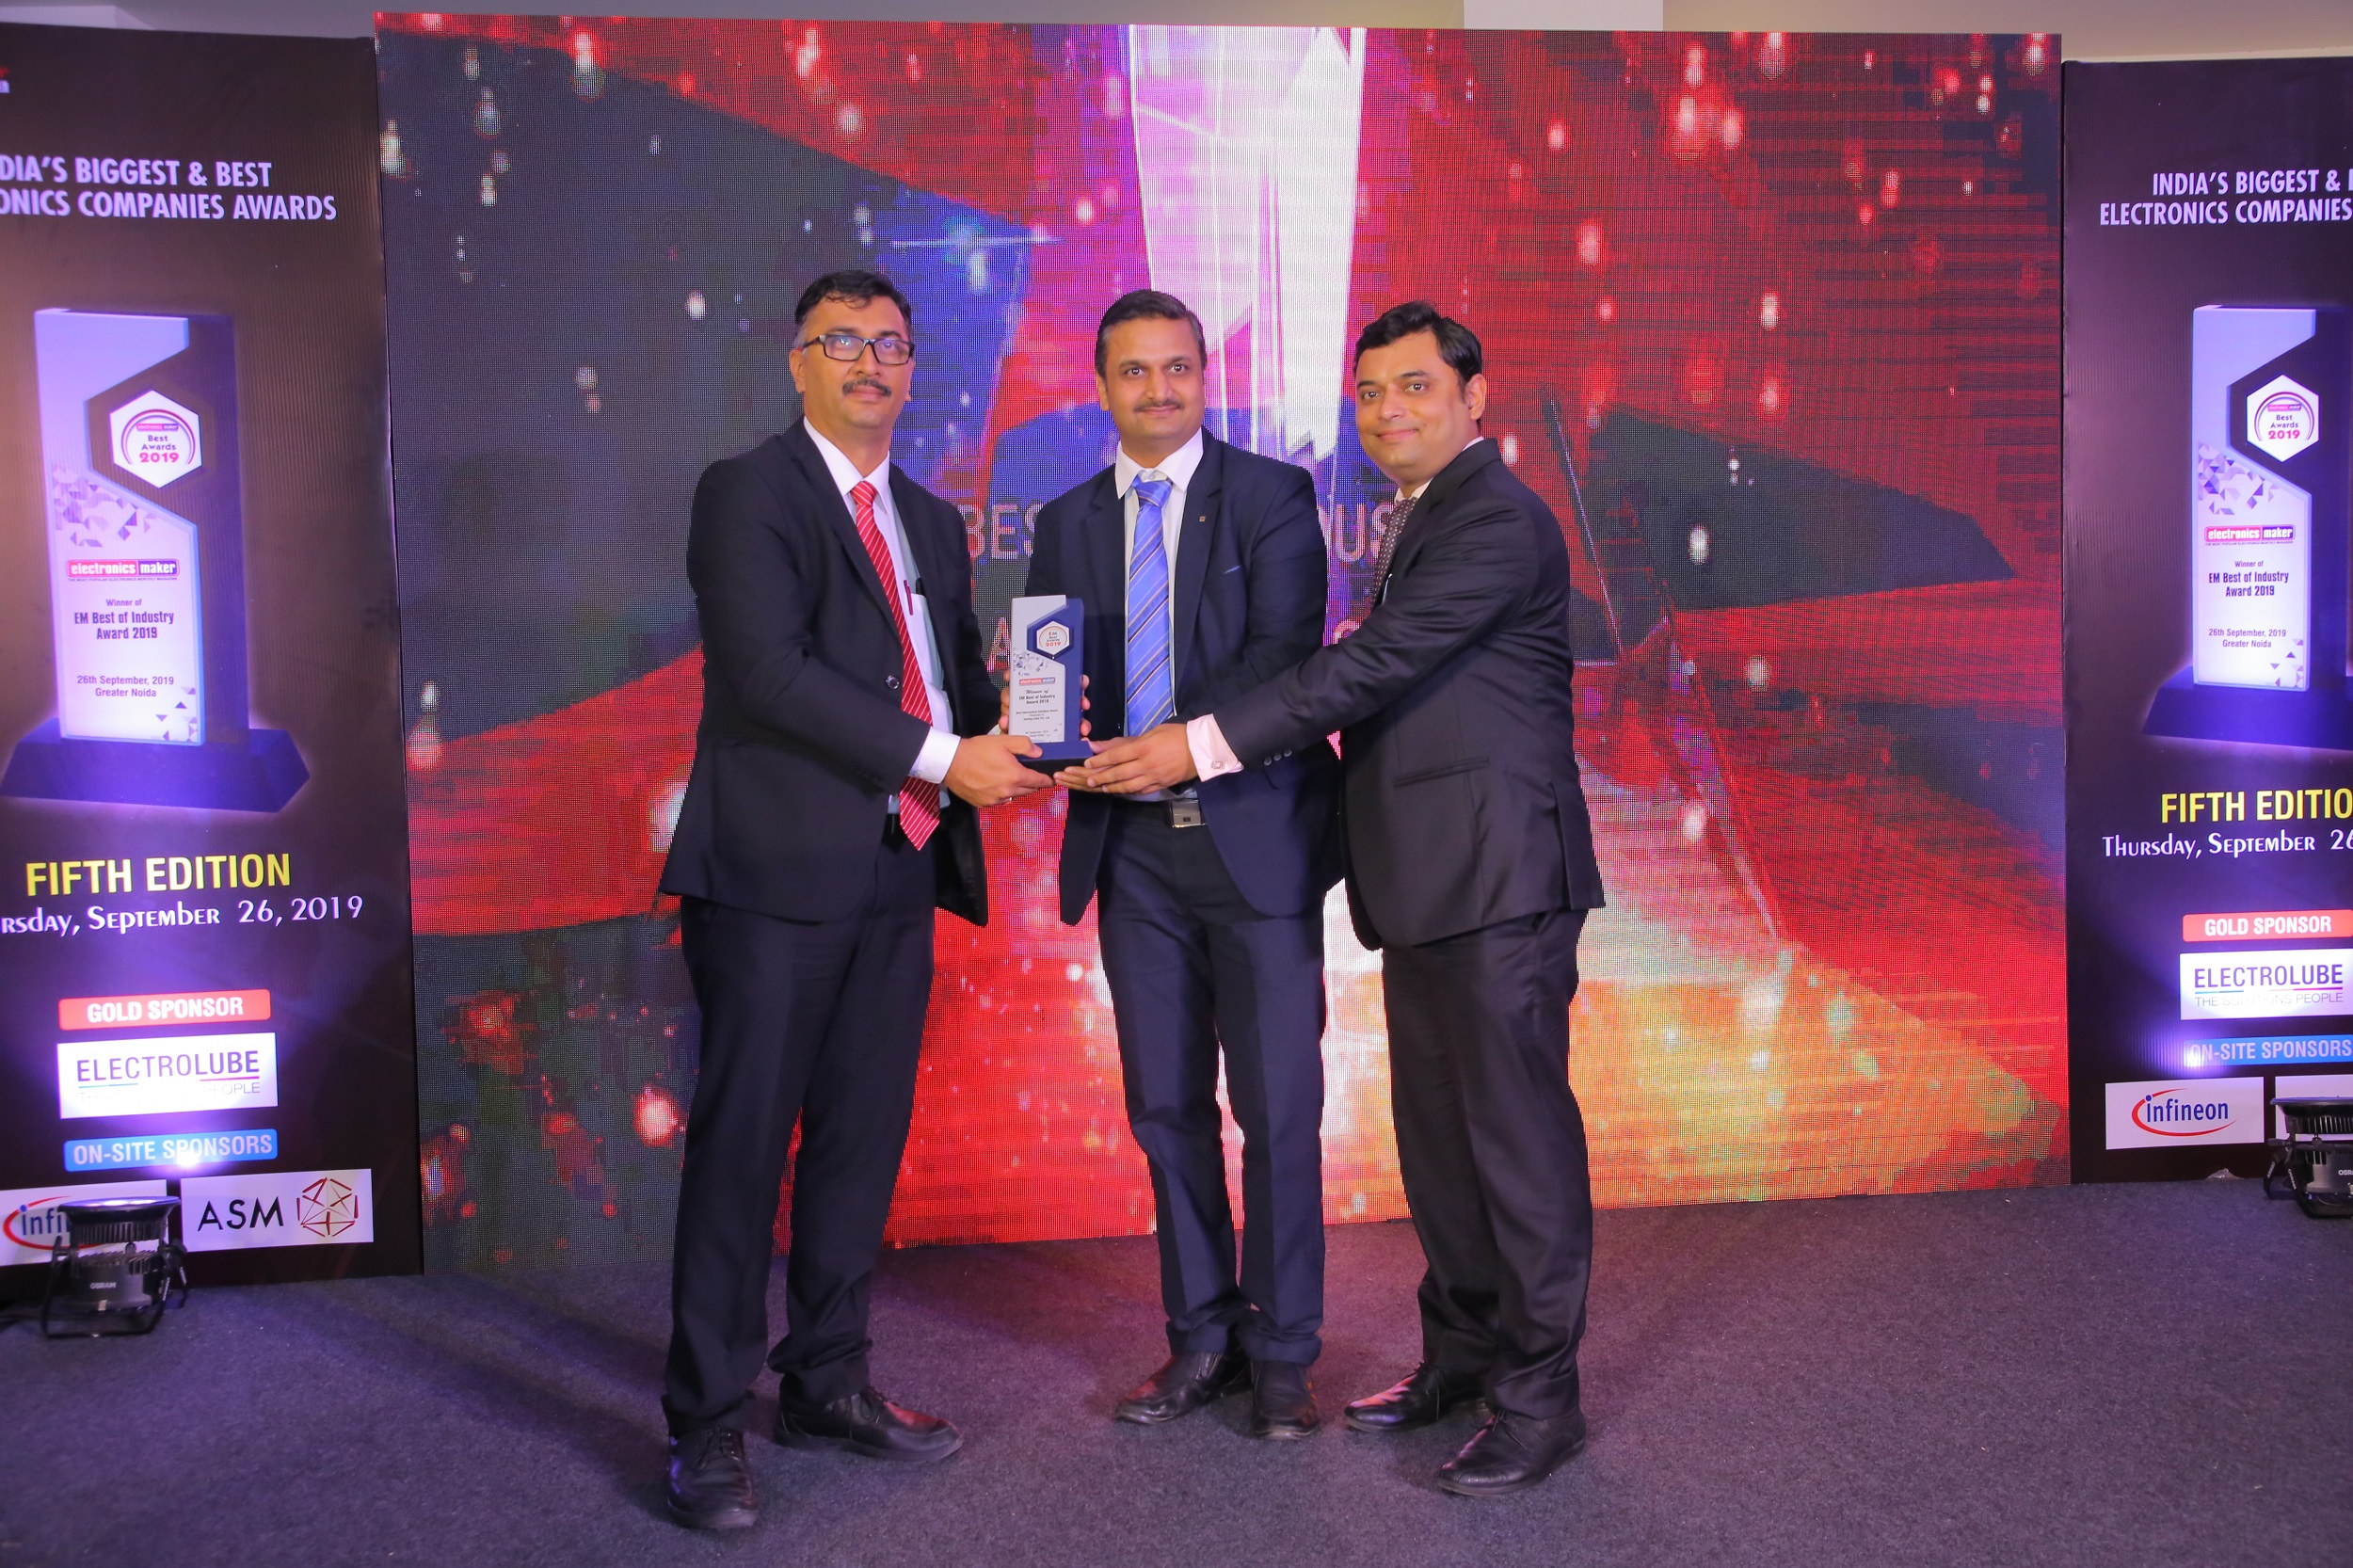 Caption: Mr. Anup Kapadia, Product Manager Device Connectivity HARTING India (middle) along with Mr. Abhishek Bimal, Marcomm Manager HARTING India (right), being awarded the trophy from Mr. Vasanth Kumar, General Manager, India, ASM Assembly Systems.